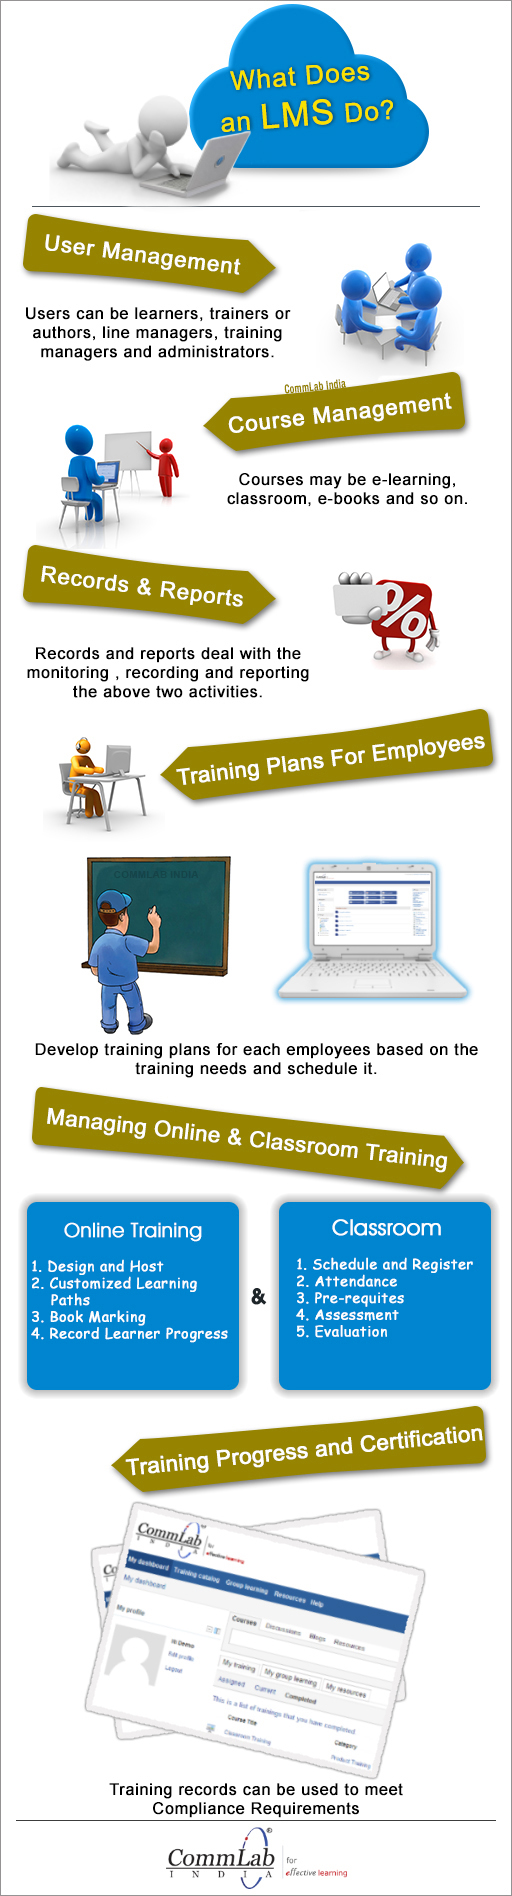 How Can LMS Help Your Organization in Training Employees? – An Infographic